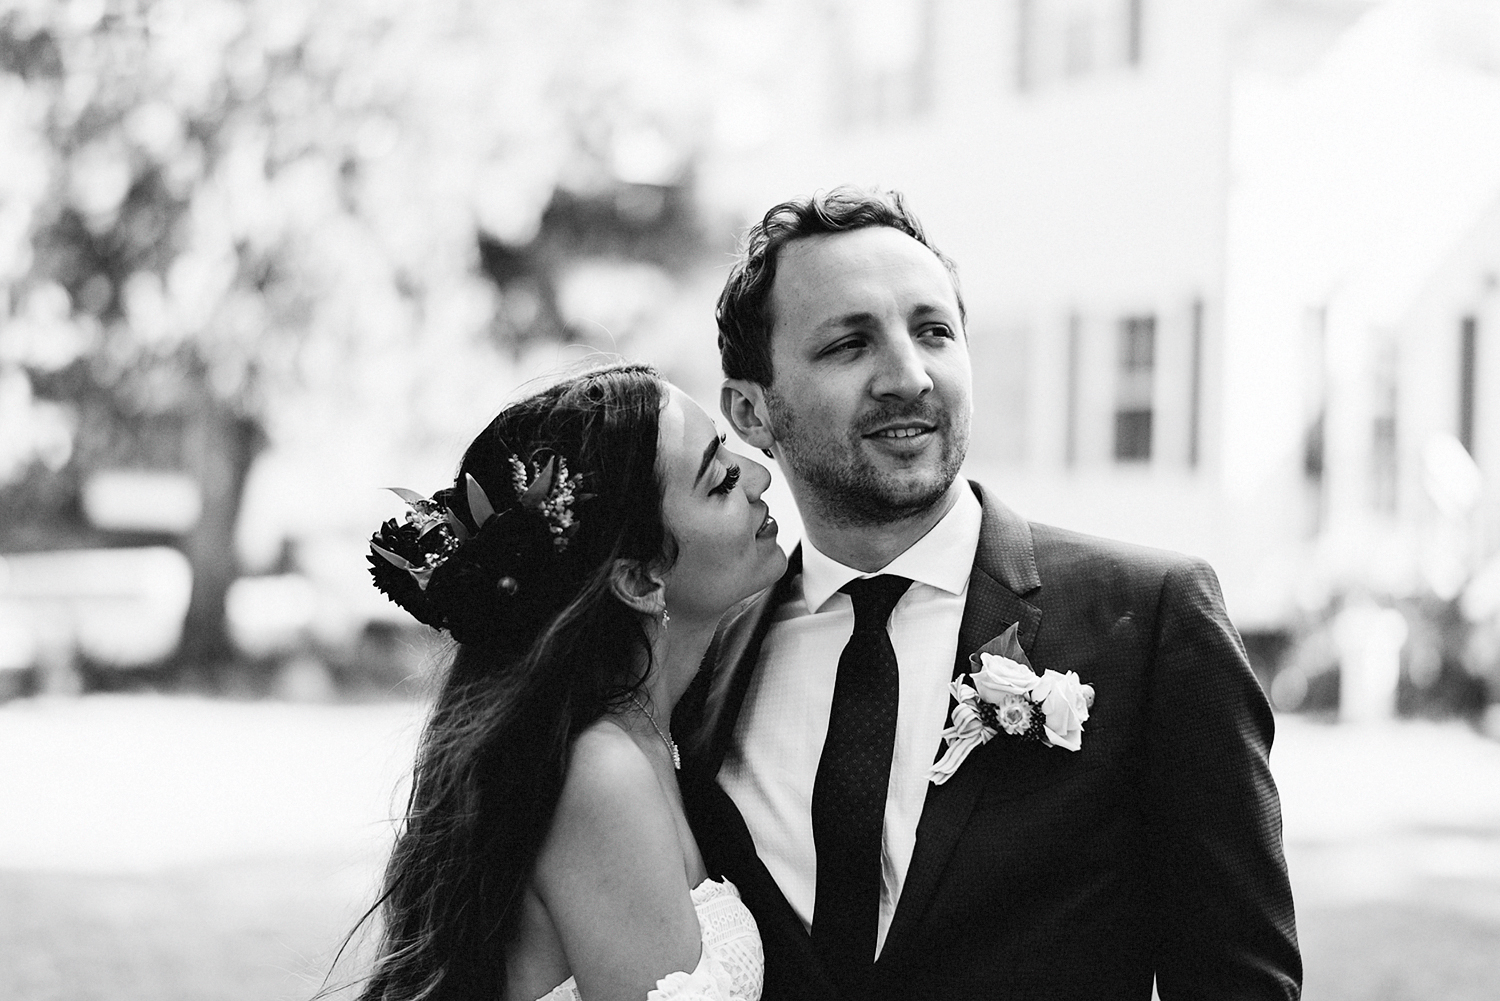 Muskoka-Cottage-Wedding-Photography-Photographer_Photojournalistic-Documentary-Wedding-Photography_Vintage-Bride-Lovers-Land-Dress_Rue-Des-Seins_Forest-Ceremony-and-Groom-Candid--moment-by-the-lakehouse.jpg